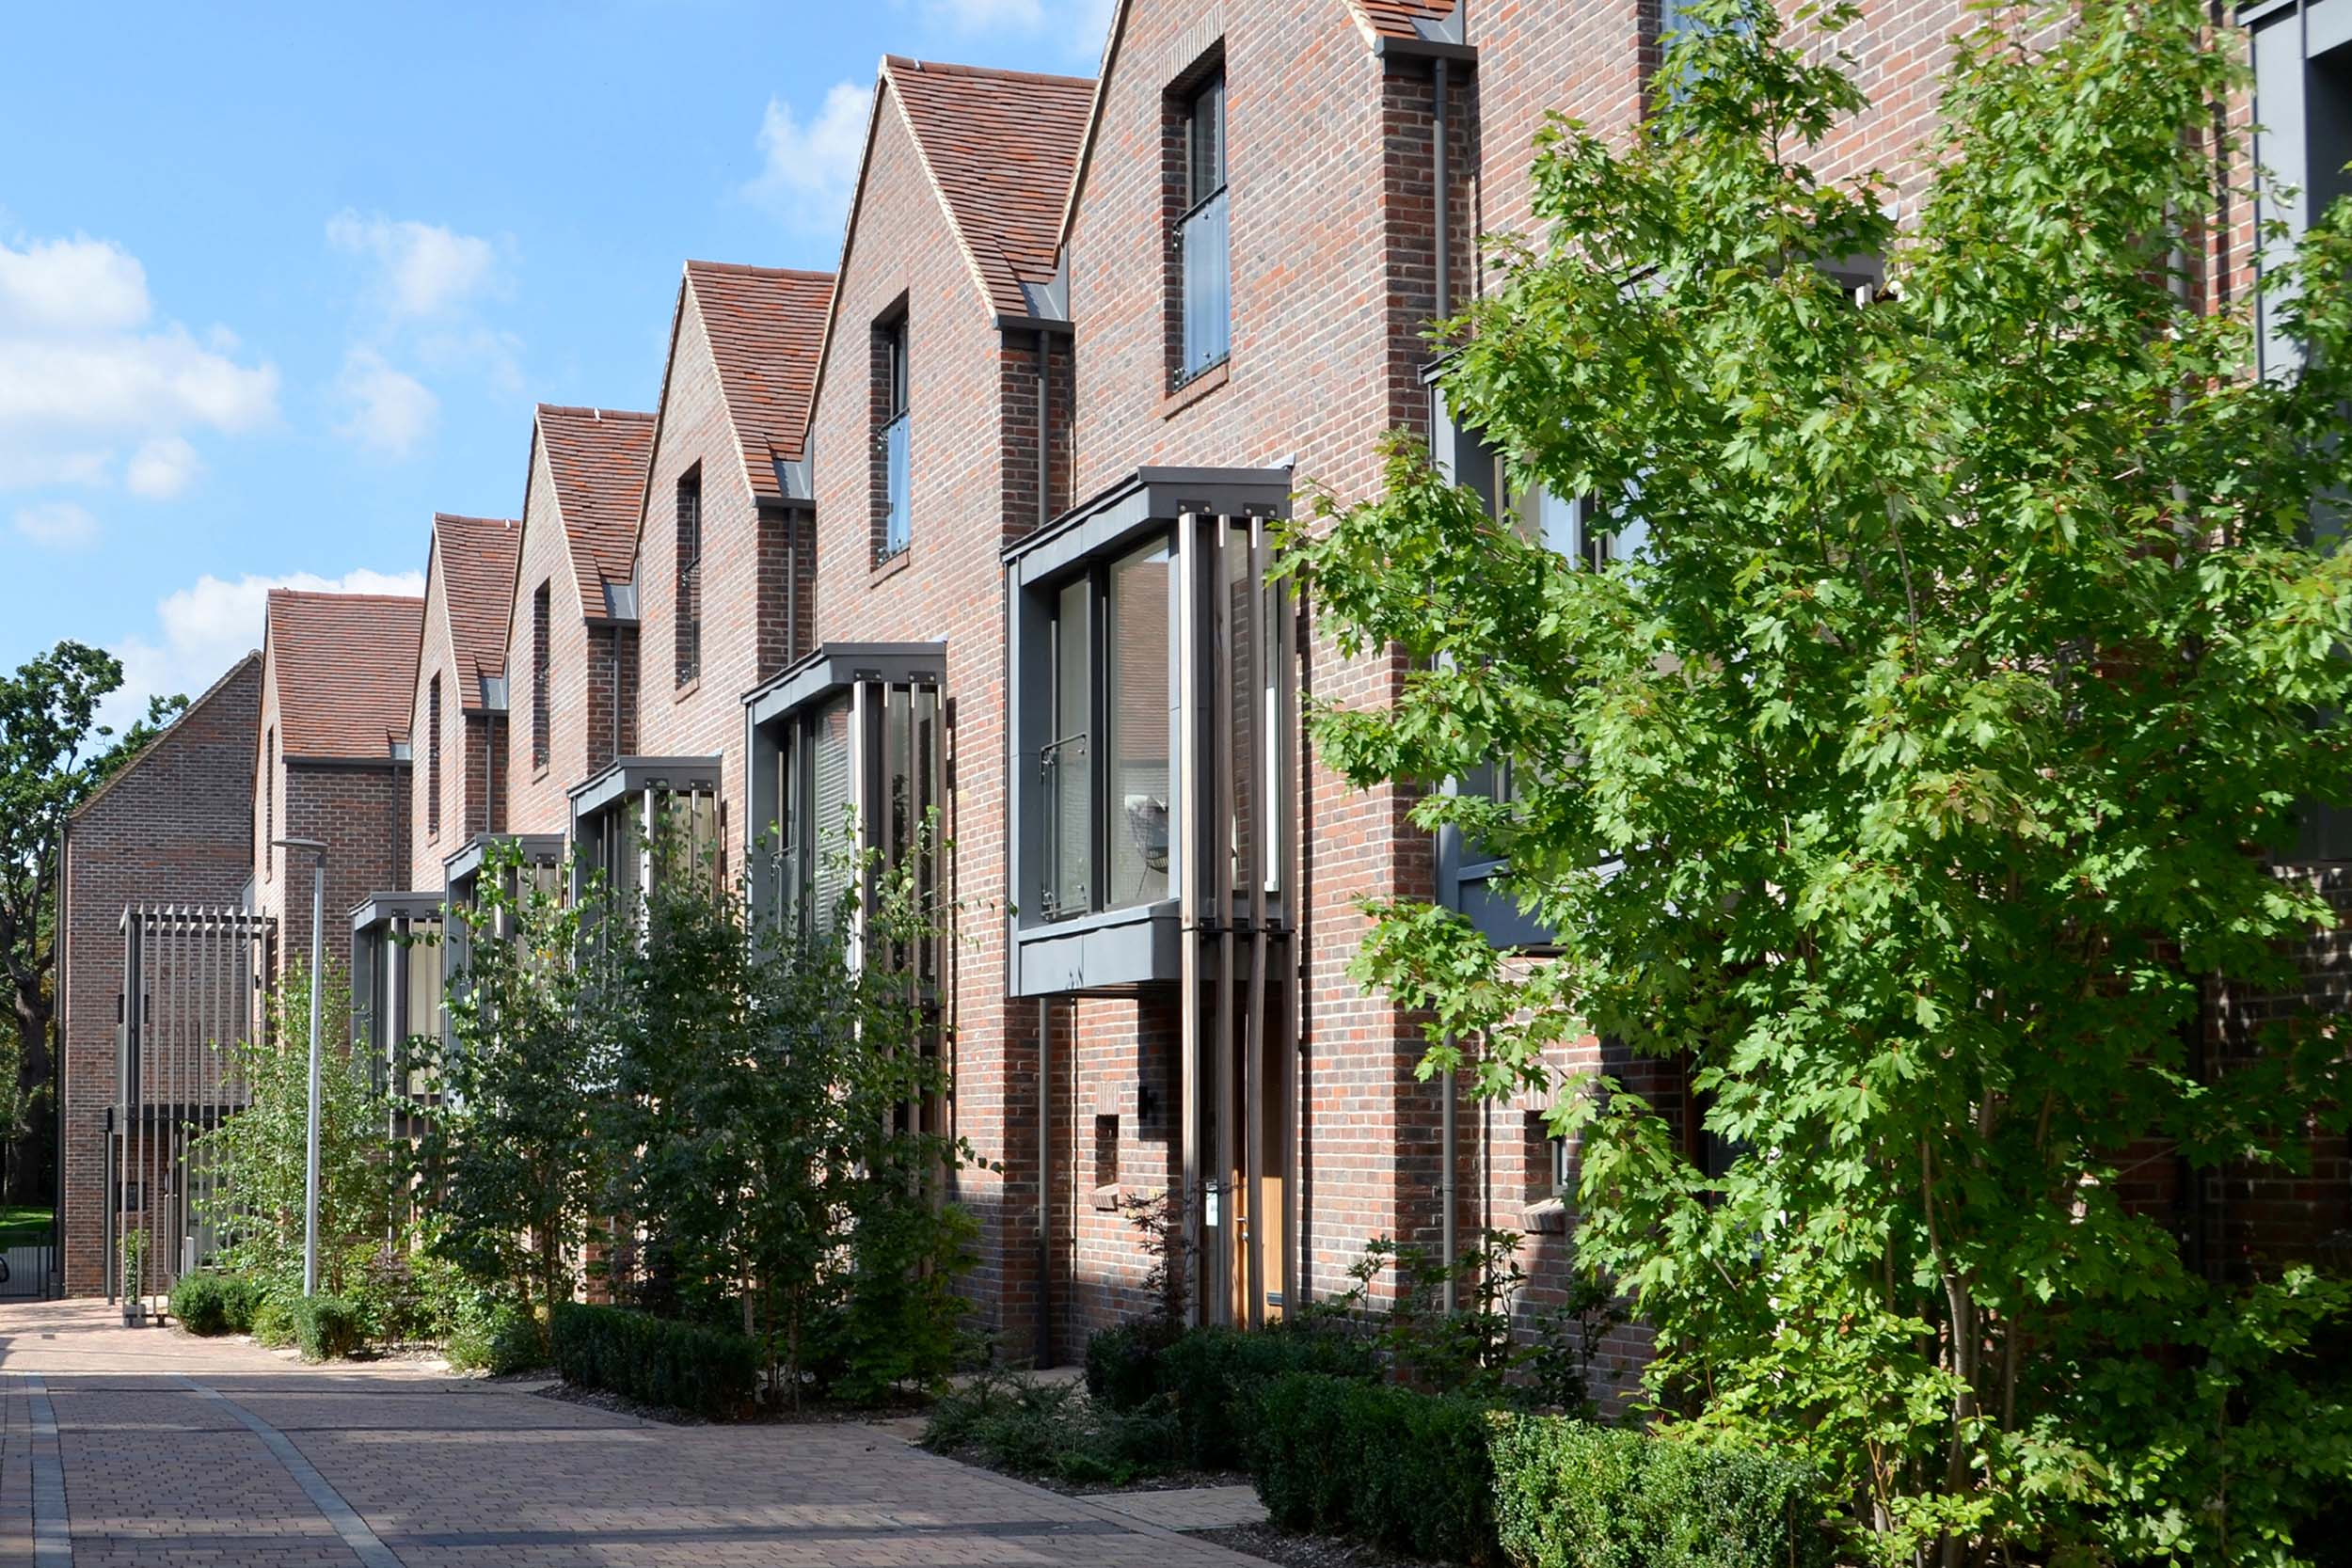 Mews Housing at Woodside Square.